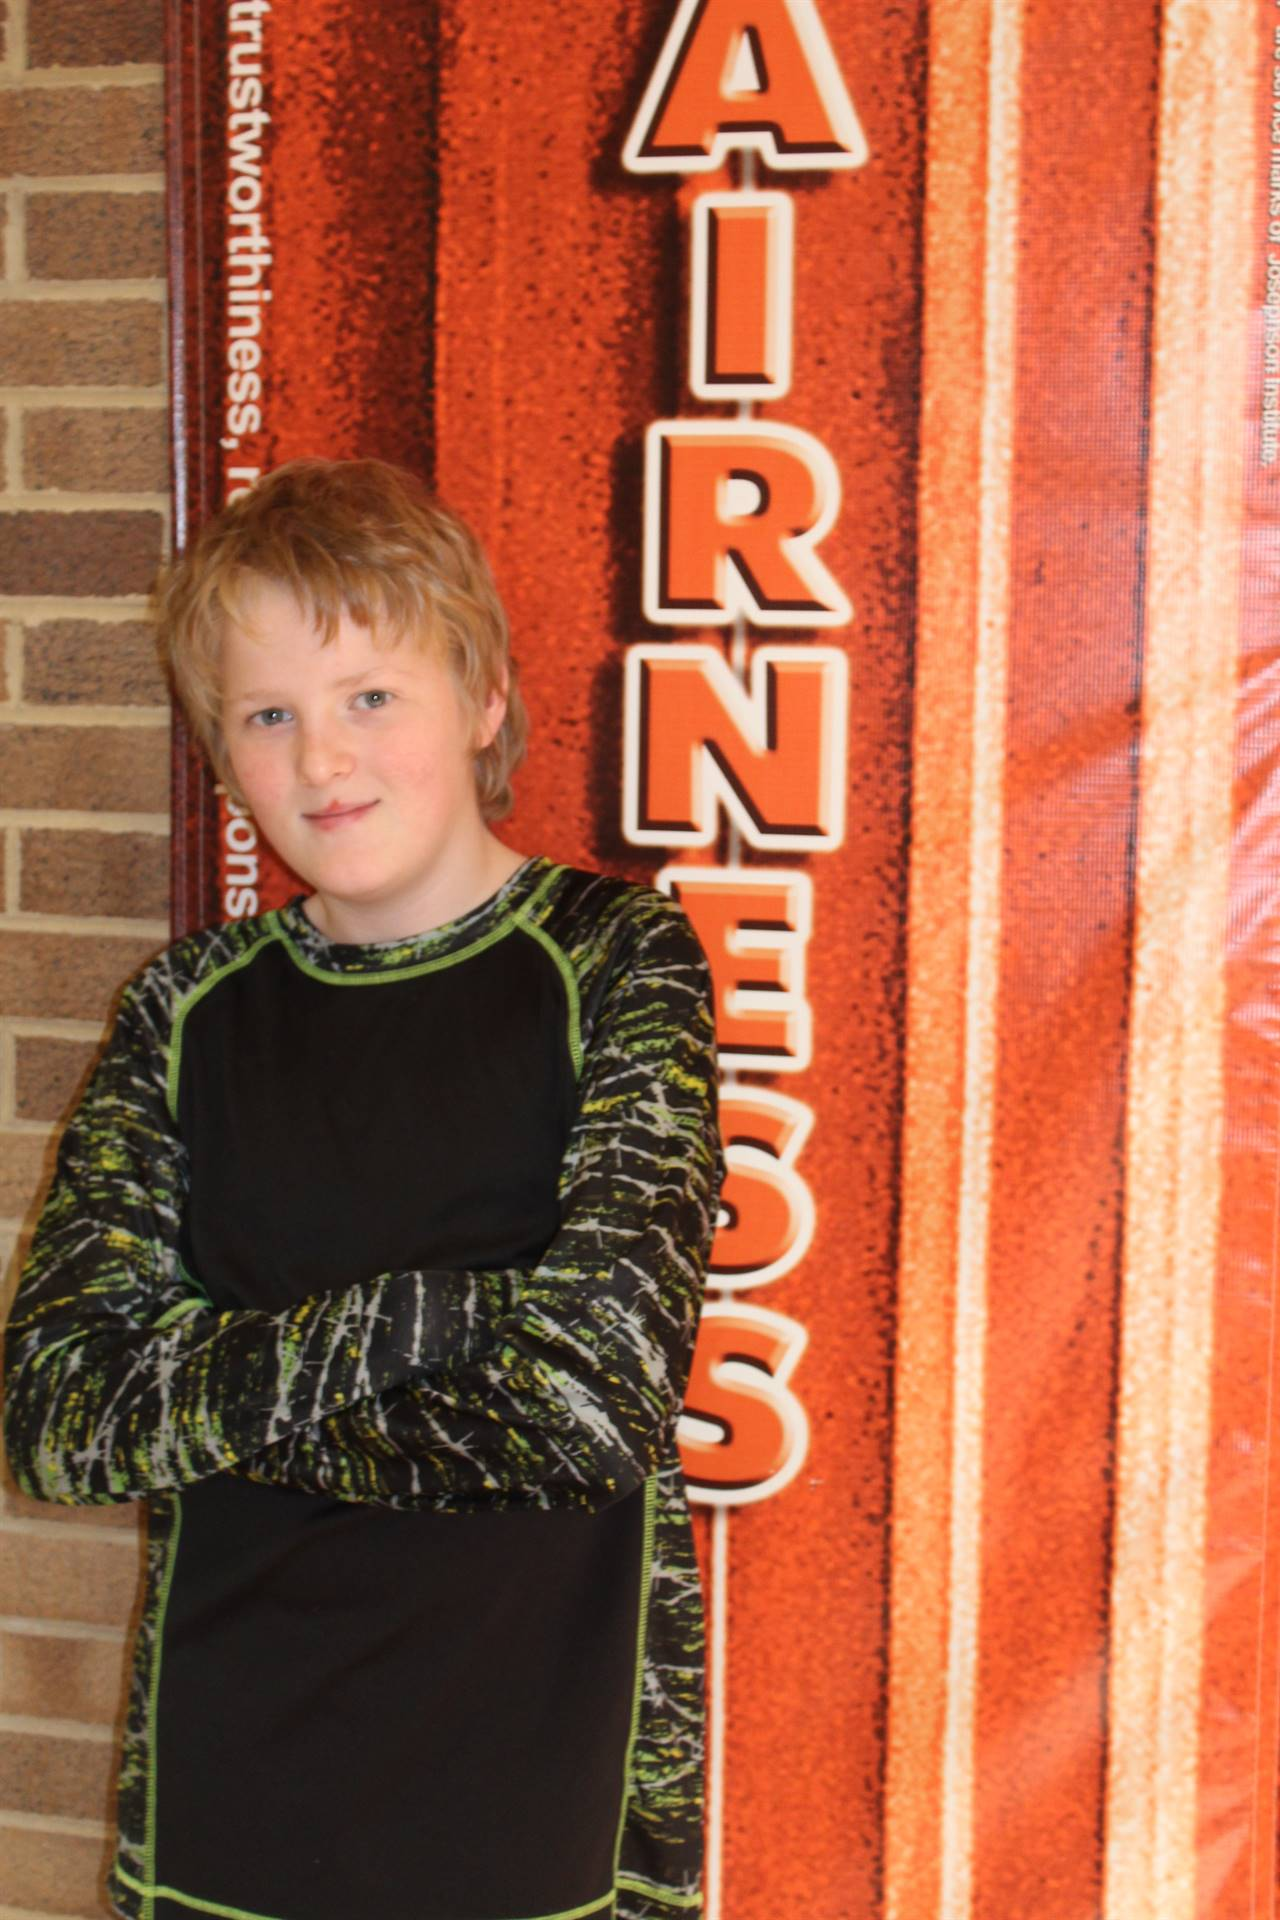 Zack S. (January Student of Character) - Fairness